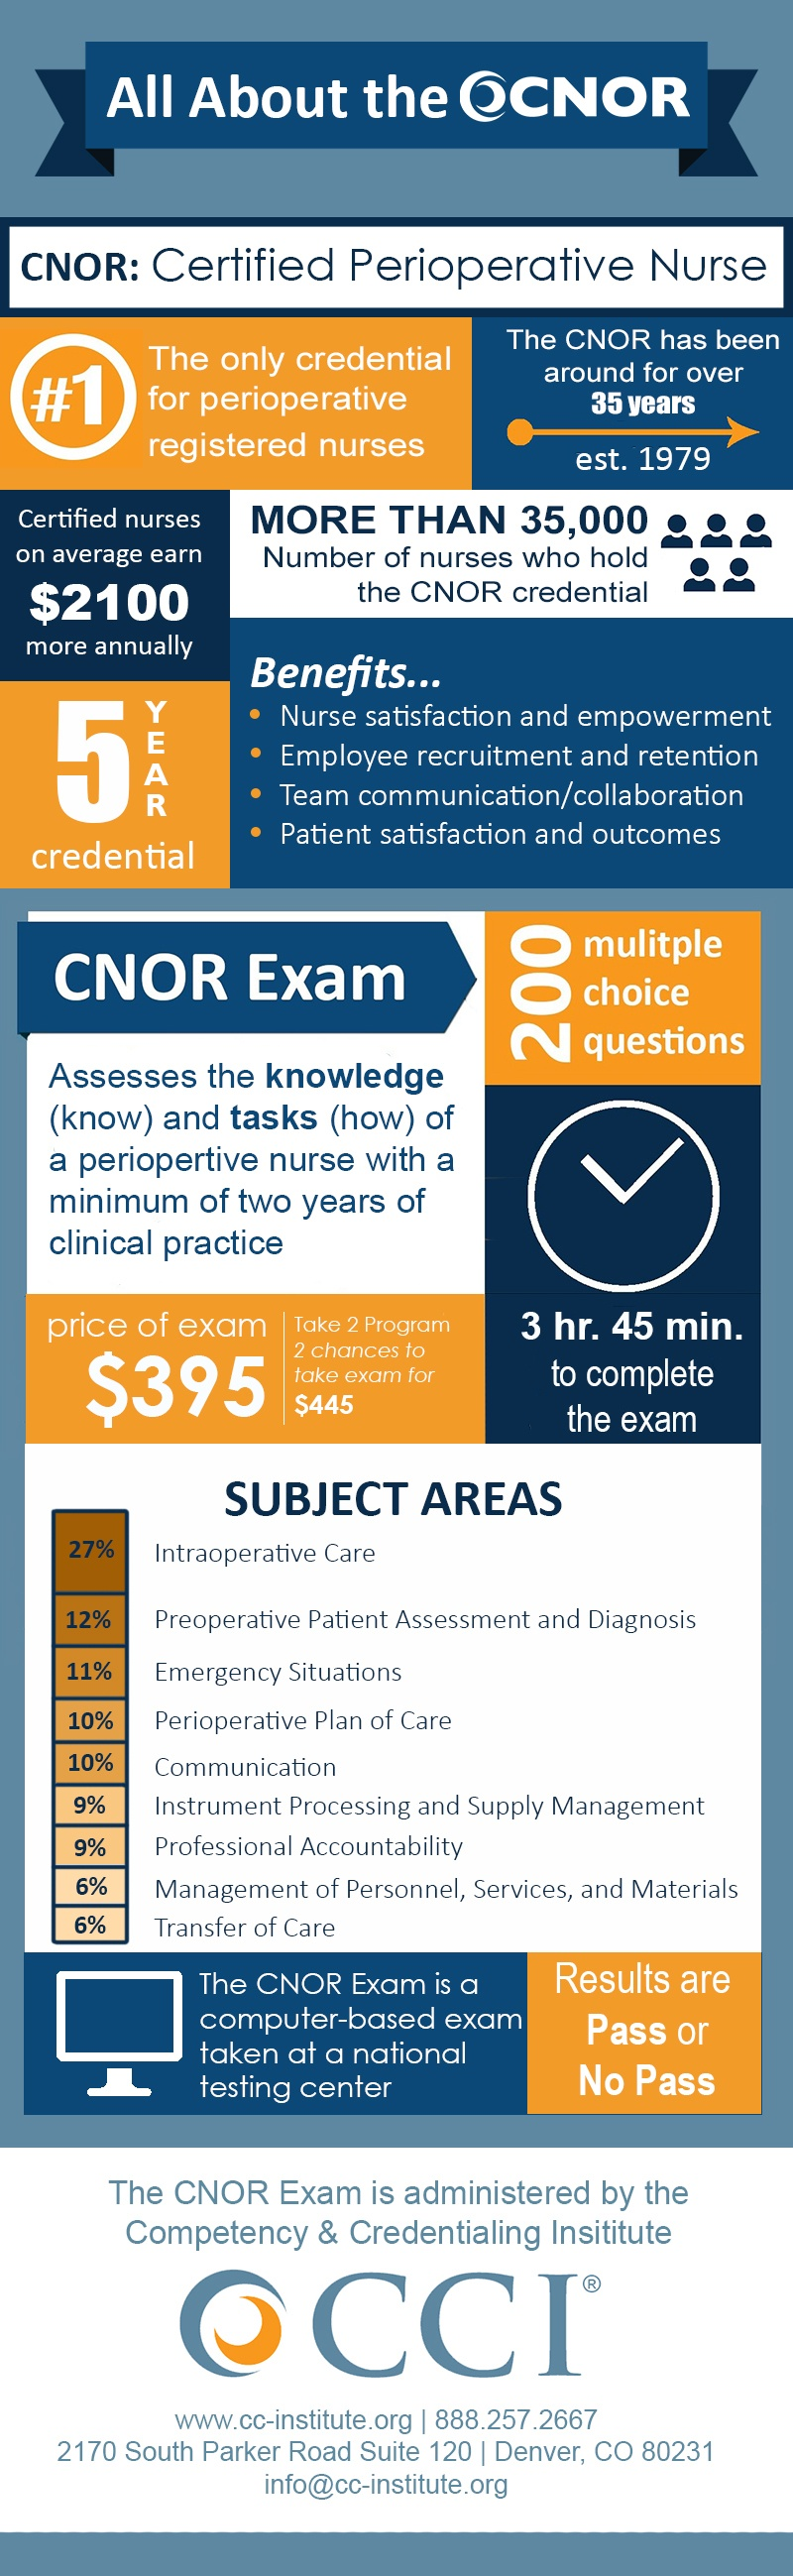 All About The Cnor Infographic